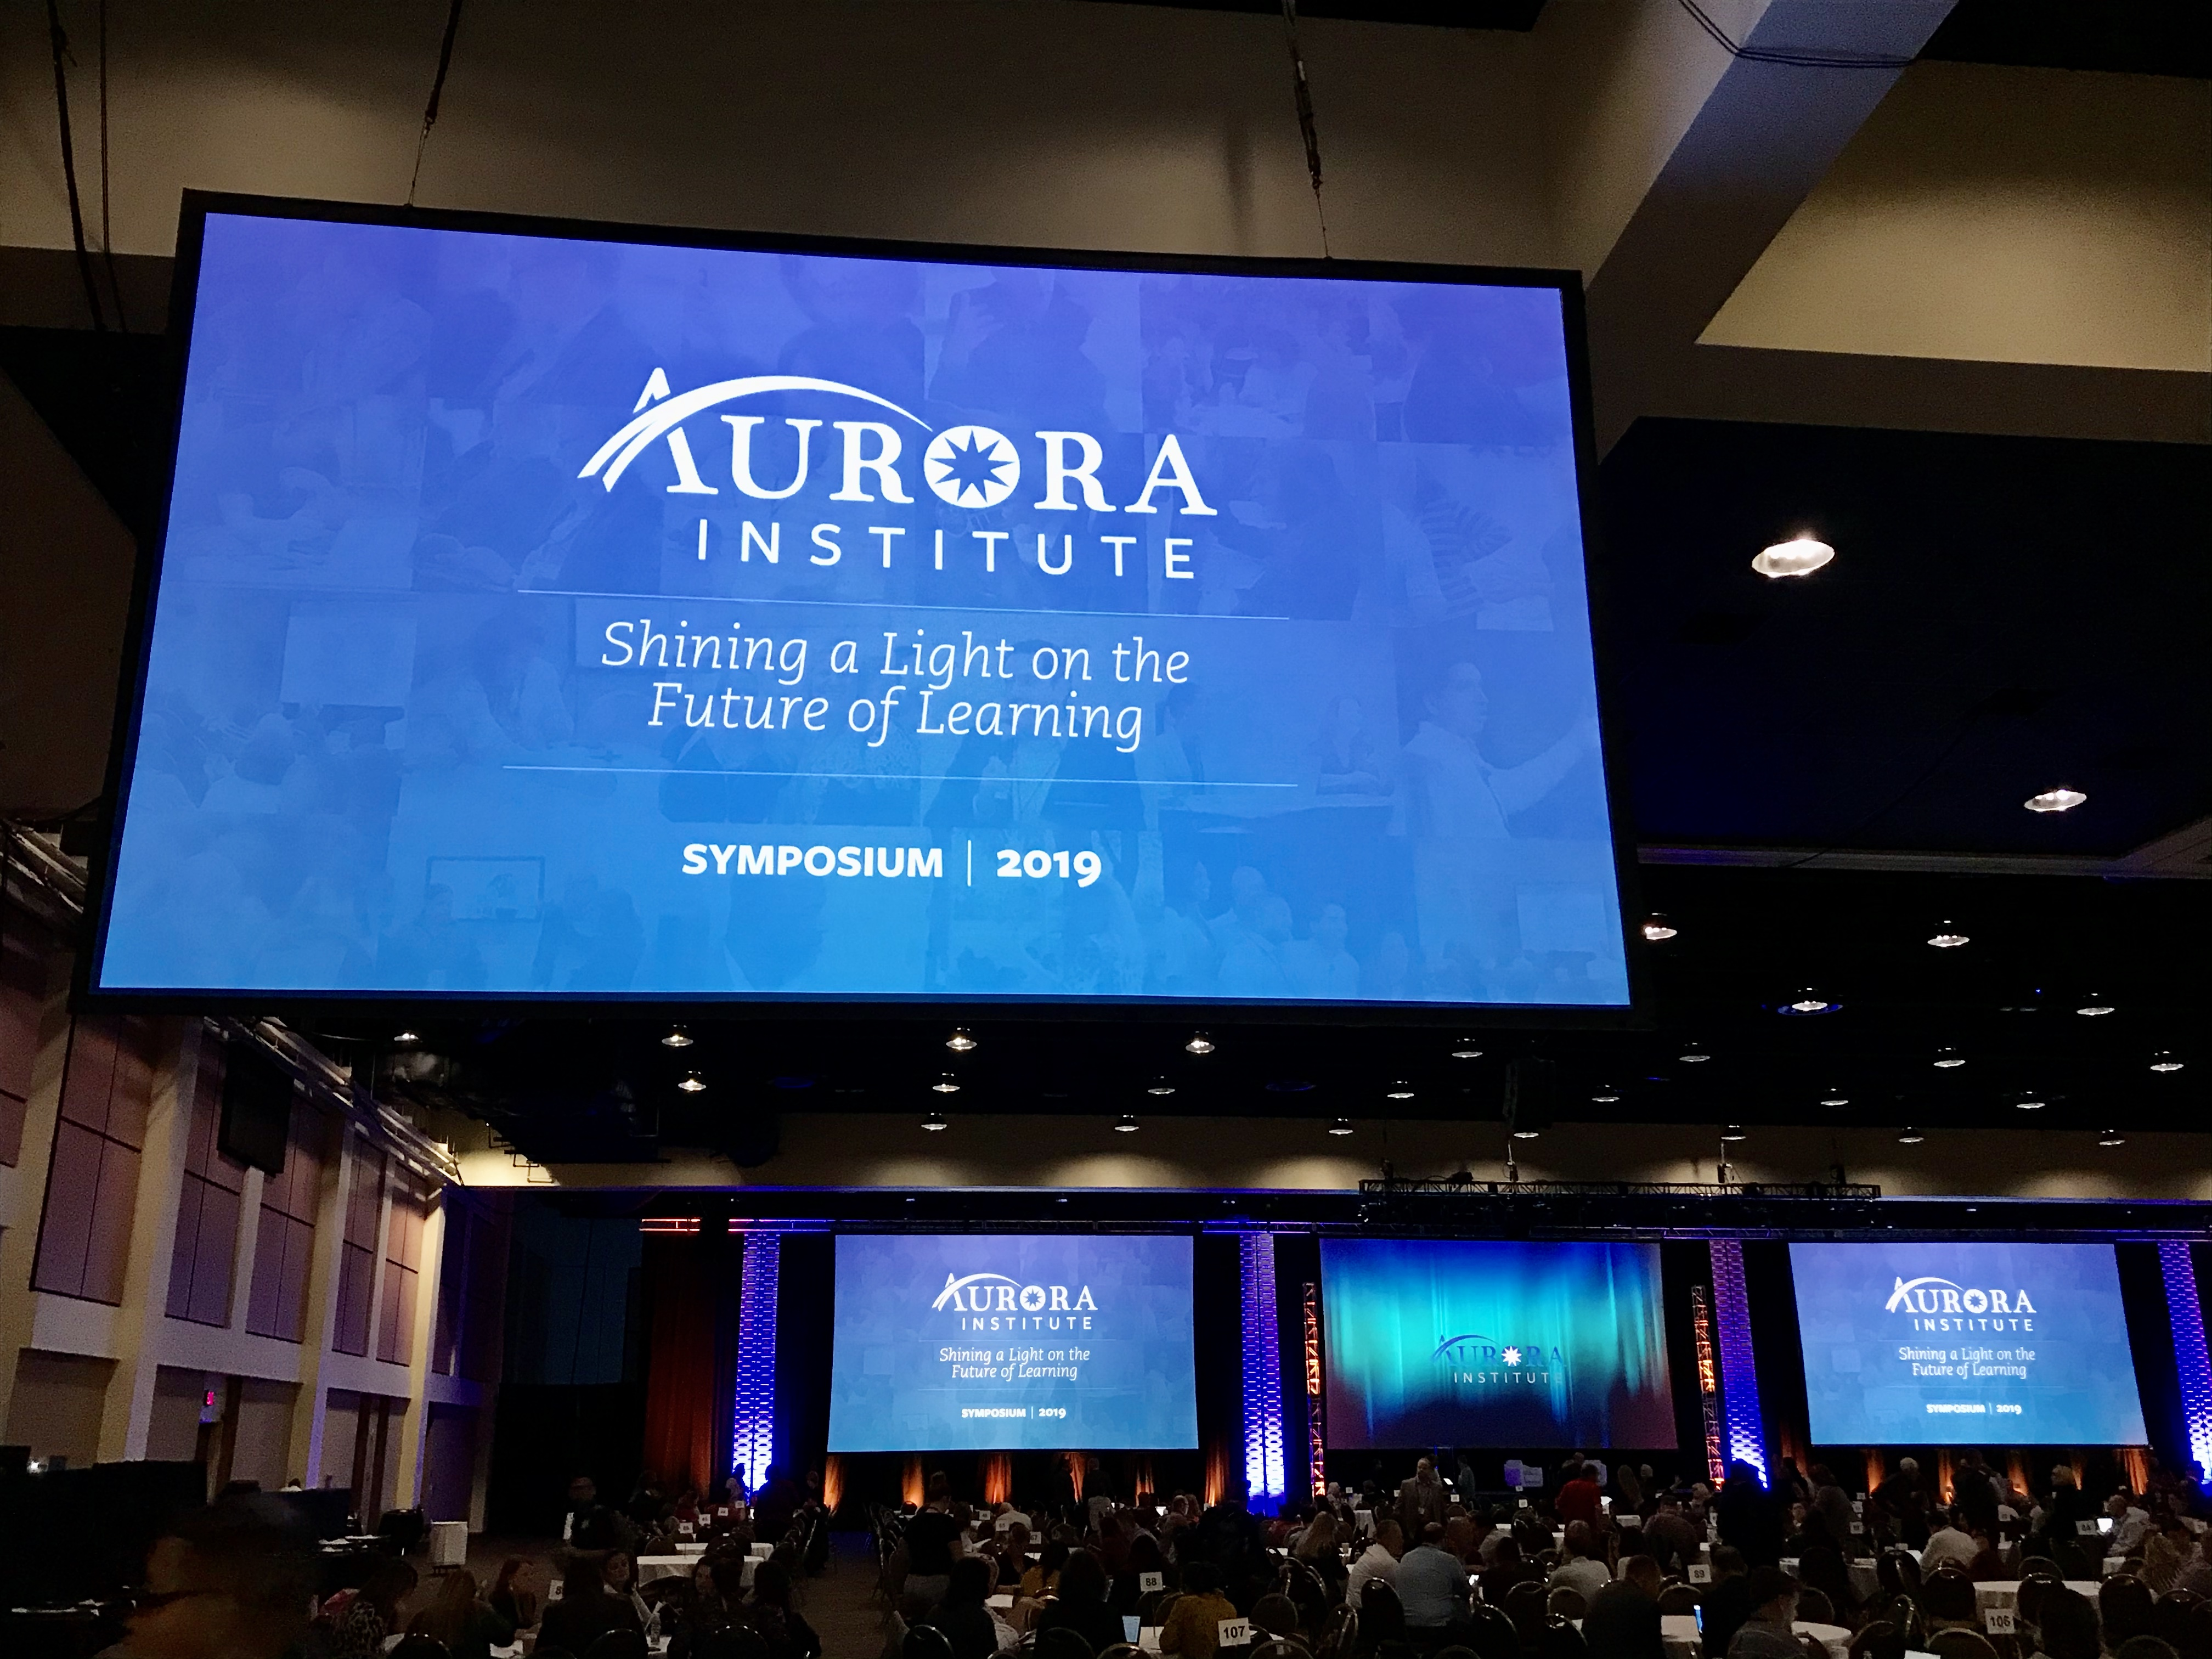 """Photo of a screen that says """"Aurora Institute: Shining a Light on the Future of Learning Symposium 2019"""""""